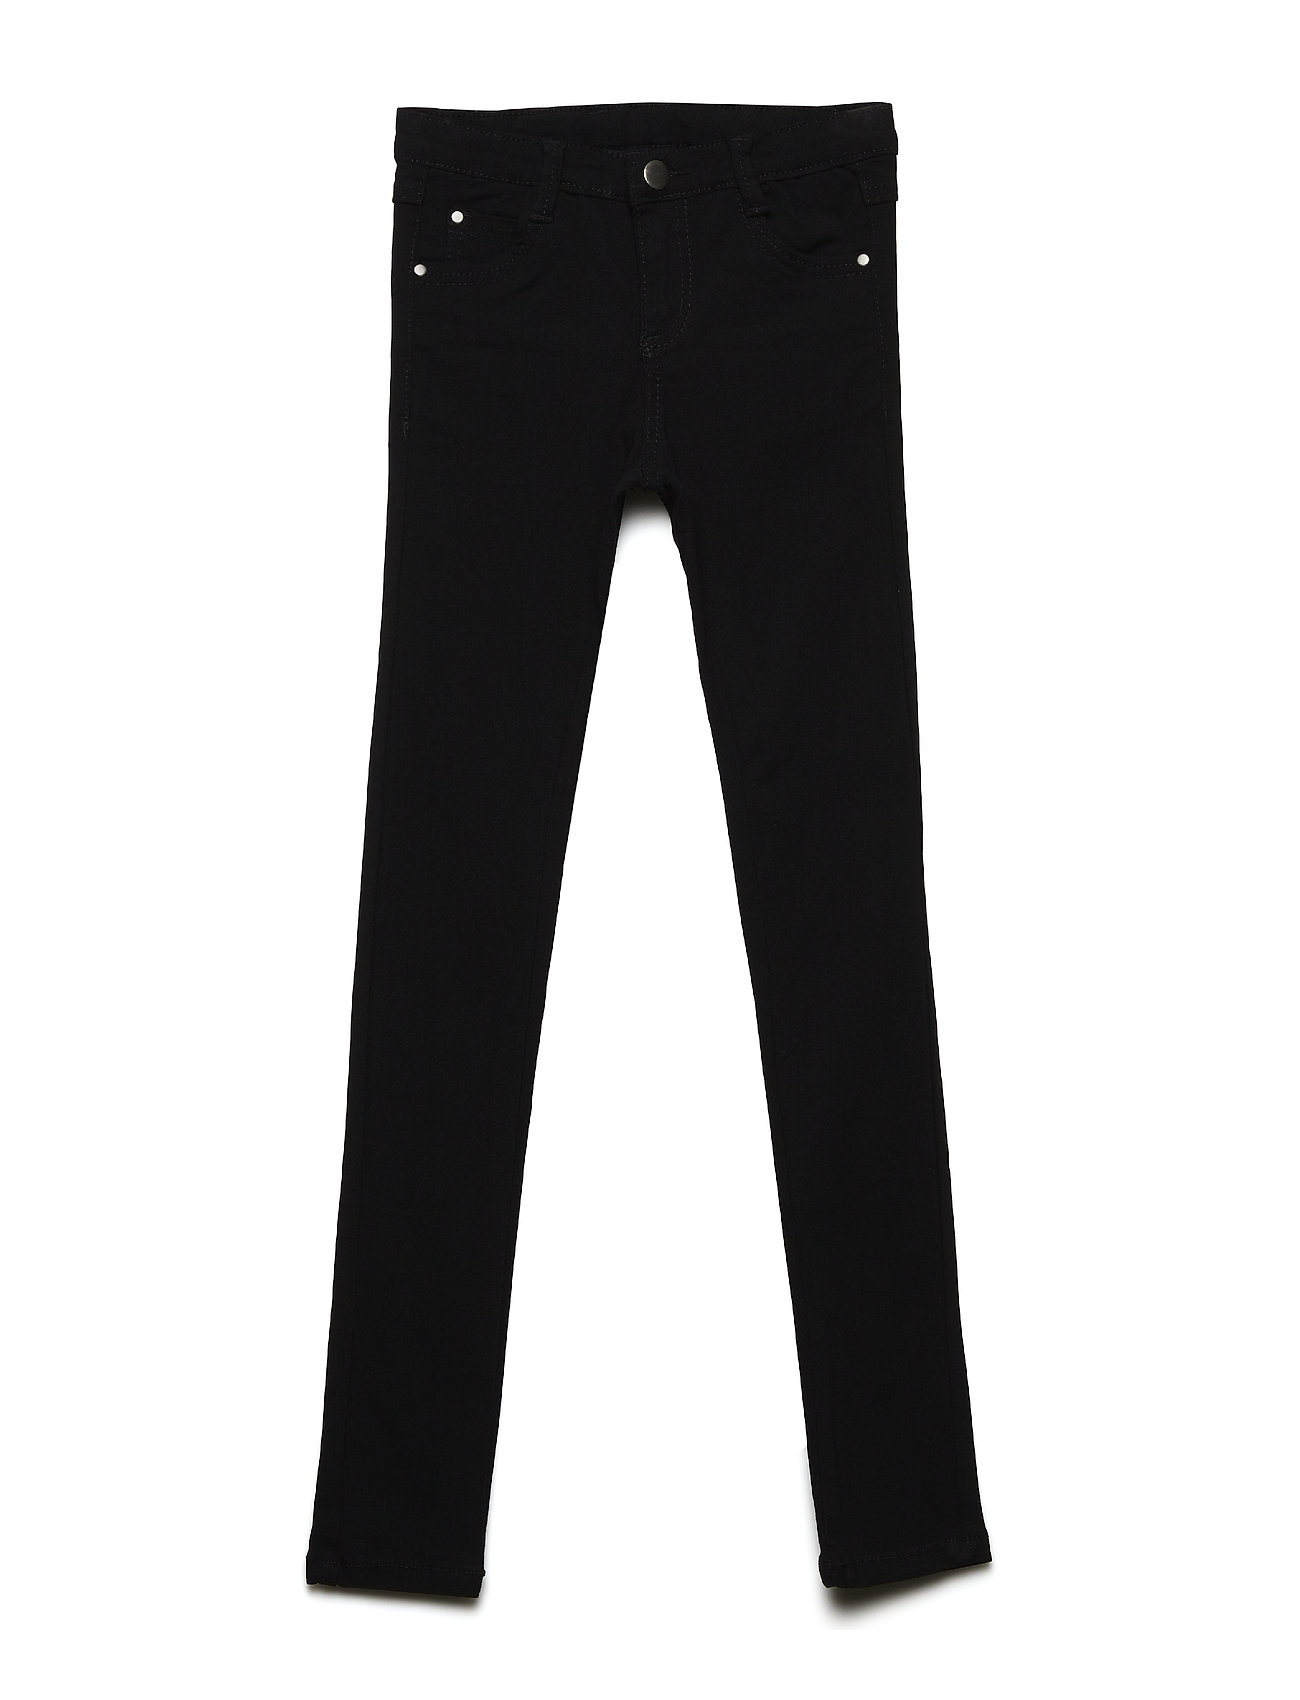 The New EMMIE STRETCH PANTS - BLACK